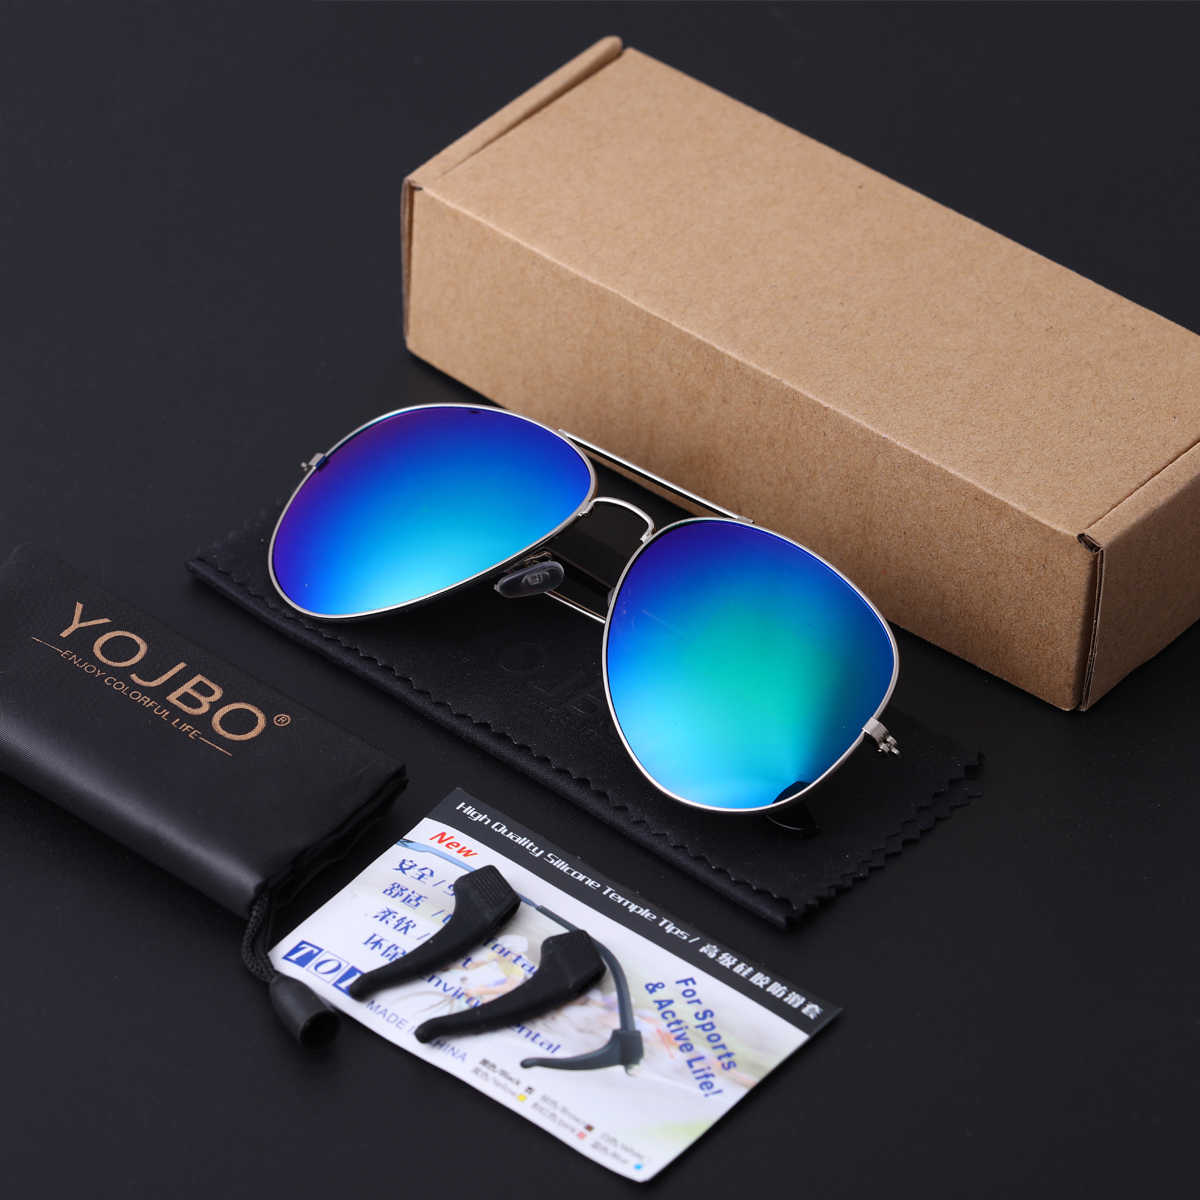 YOJBO Luxury Pilot Sunglasses Men Alloy Frame Mirror Coating Lens Women Driving Designer Brand UV400 Shades Luxury UV400 Glasses